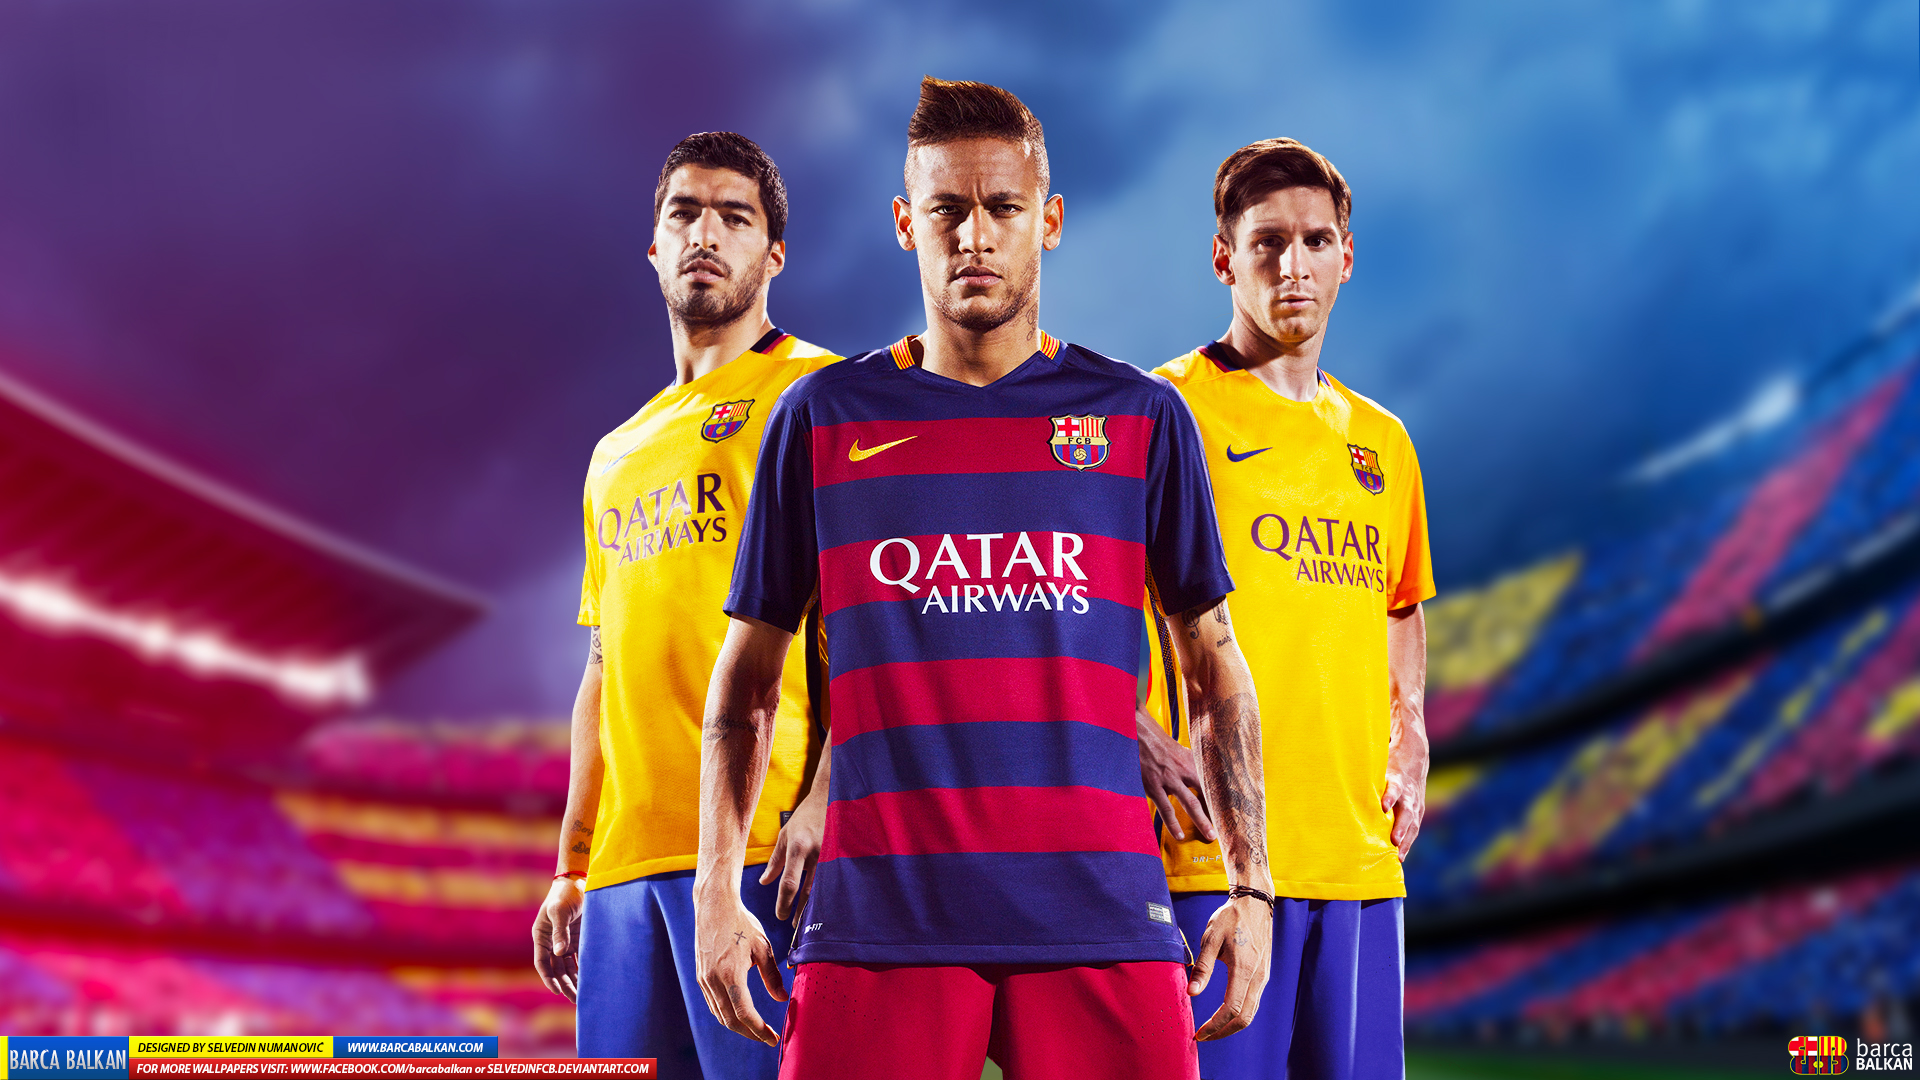 Hd wallpaper neymar - Messi Suarez Neymar Hd Wallpaper 2015 By Selvedinfcb On Deviantart